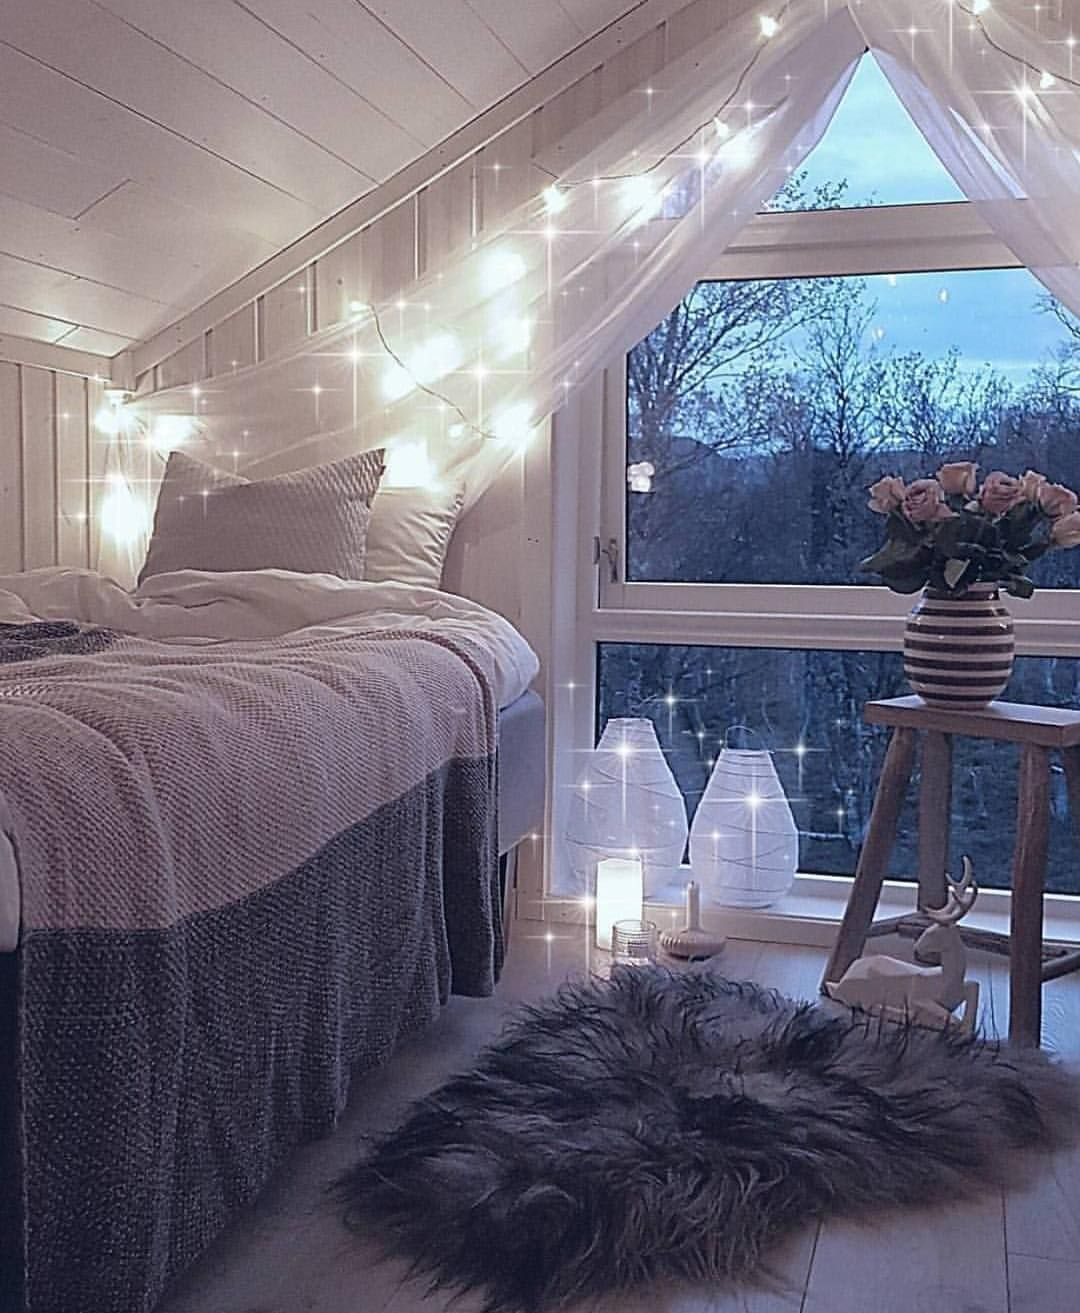 The best contemporary bedroom lighting design ideas for your home decor. #style #shopping #styles #outfit #pretty #girl #girls #beauty #beautiful #me #cute #stylish #photooftheday #swag #dress #shoes #diy #design #fashion #homedecor